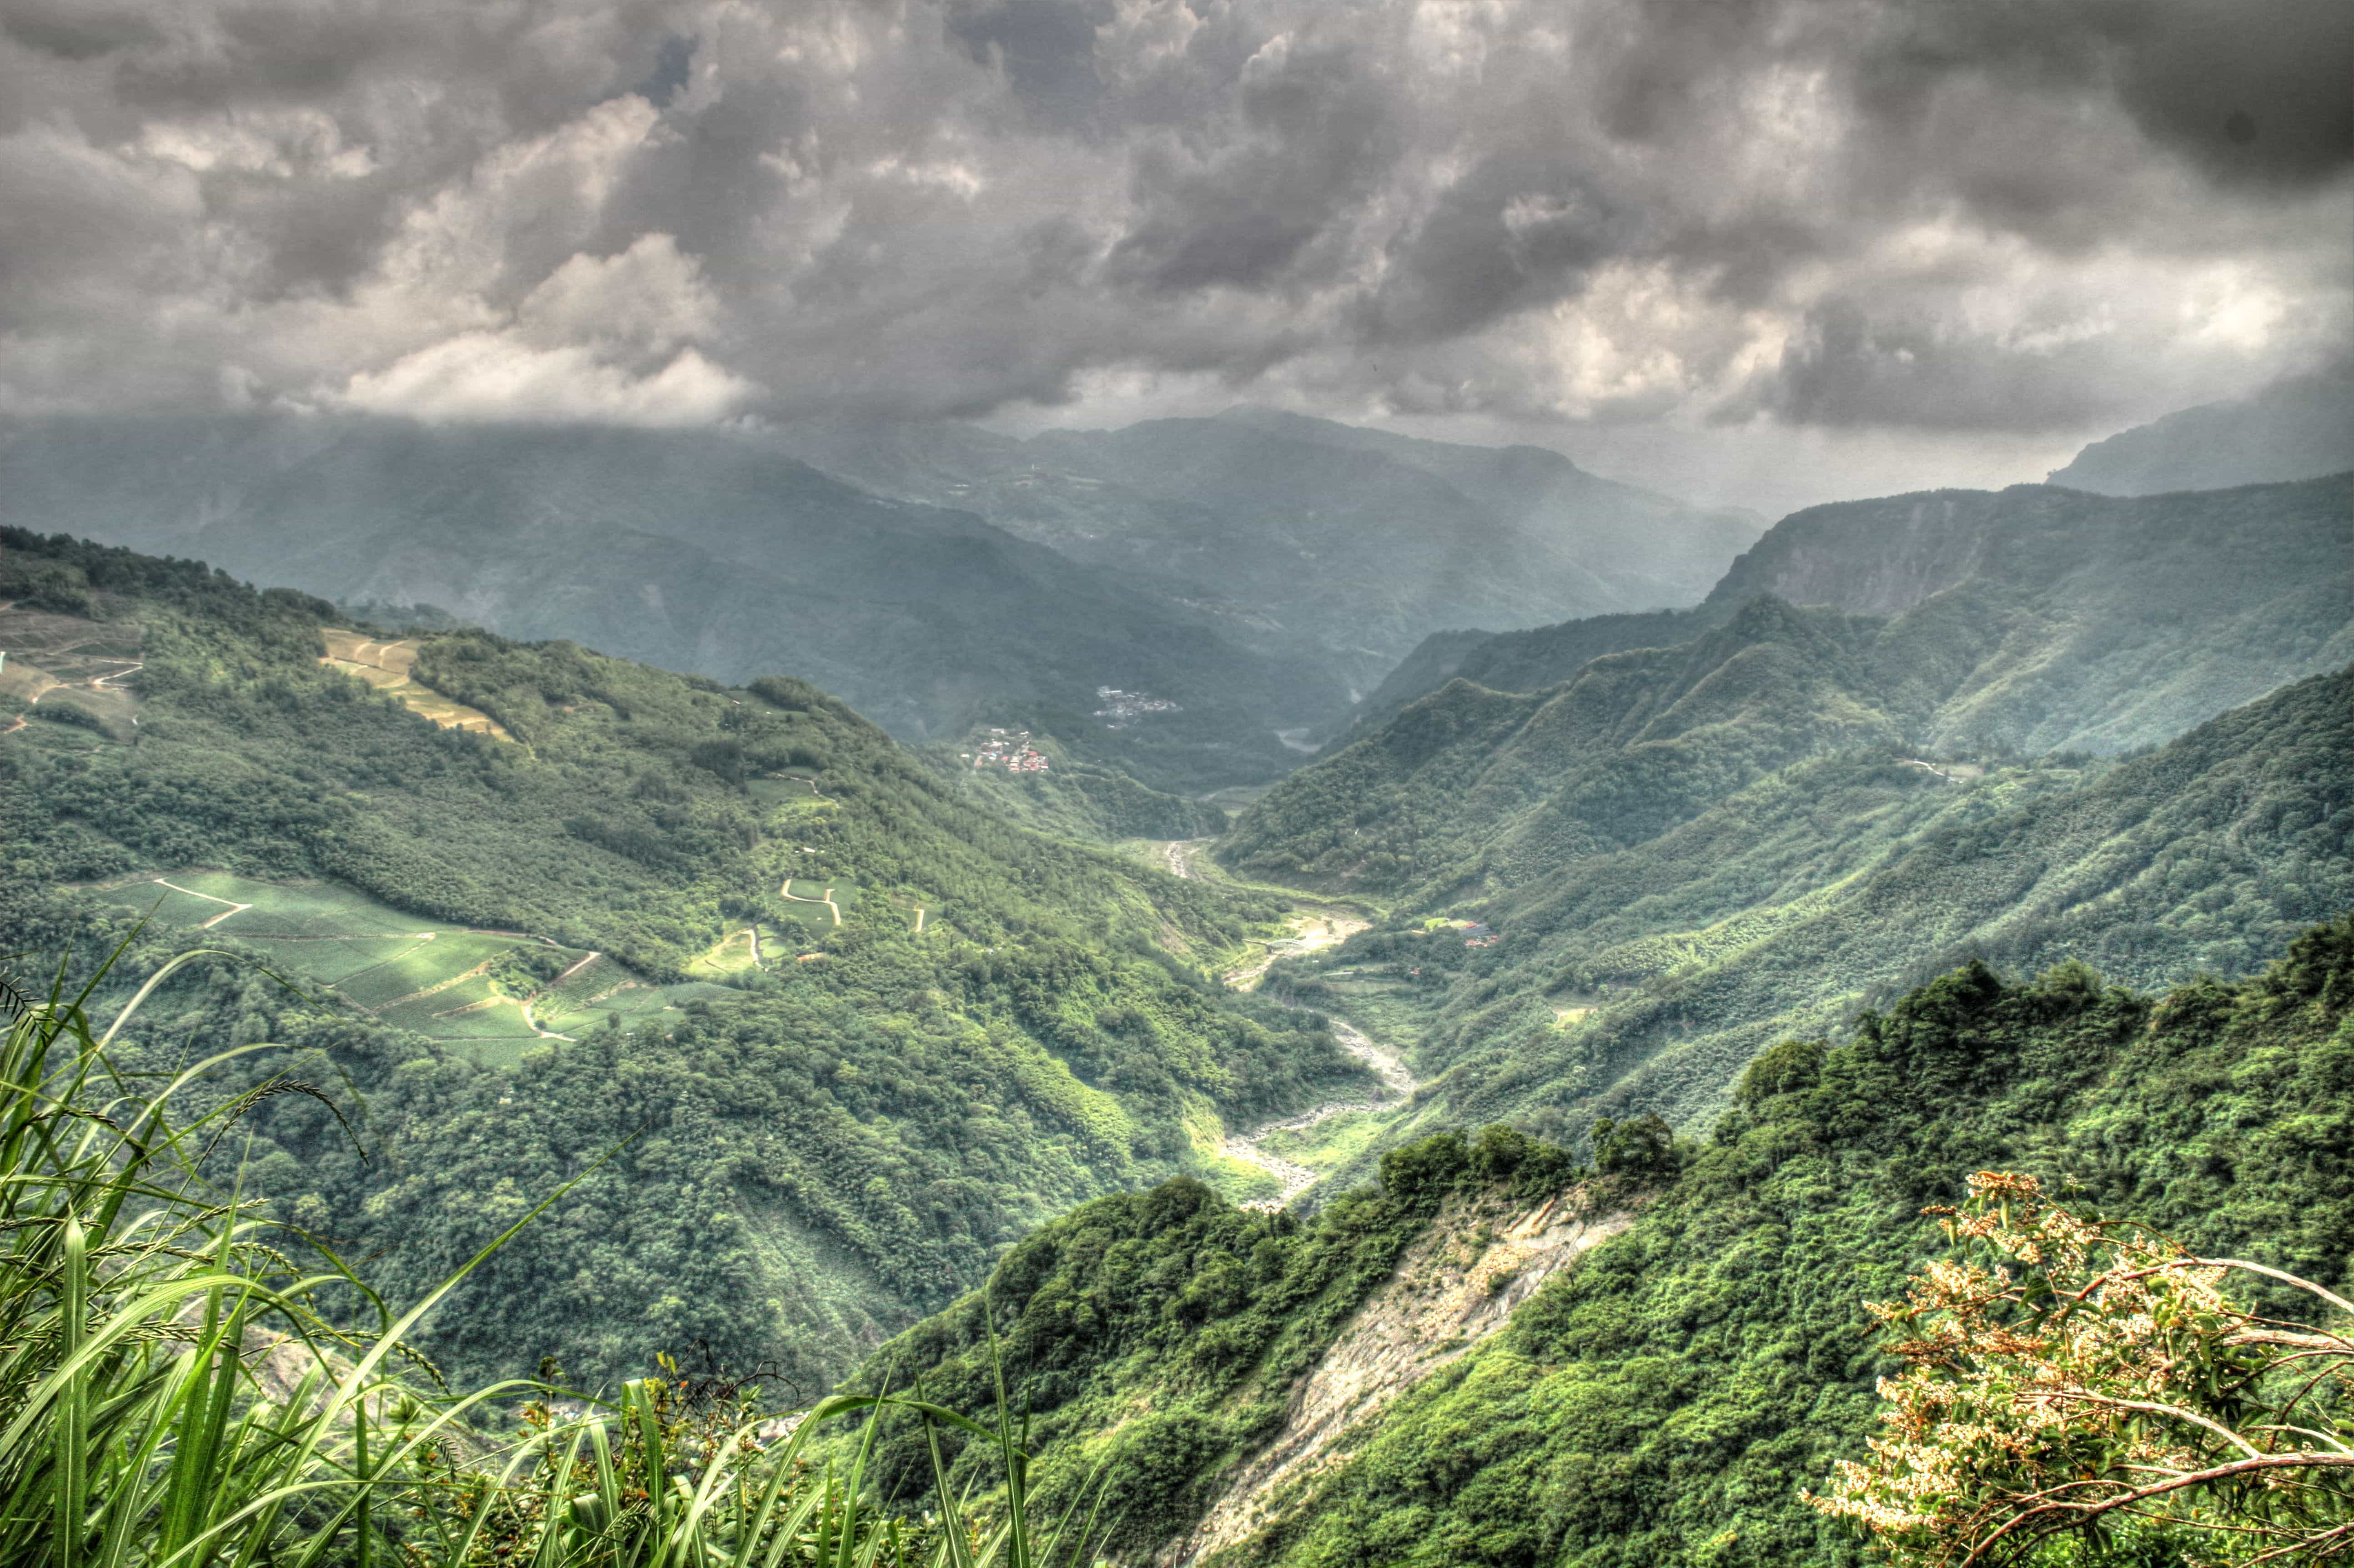 5 Sights To See In Taiwan (Other Than Taipei!)